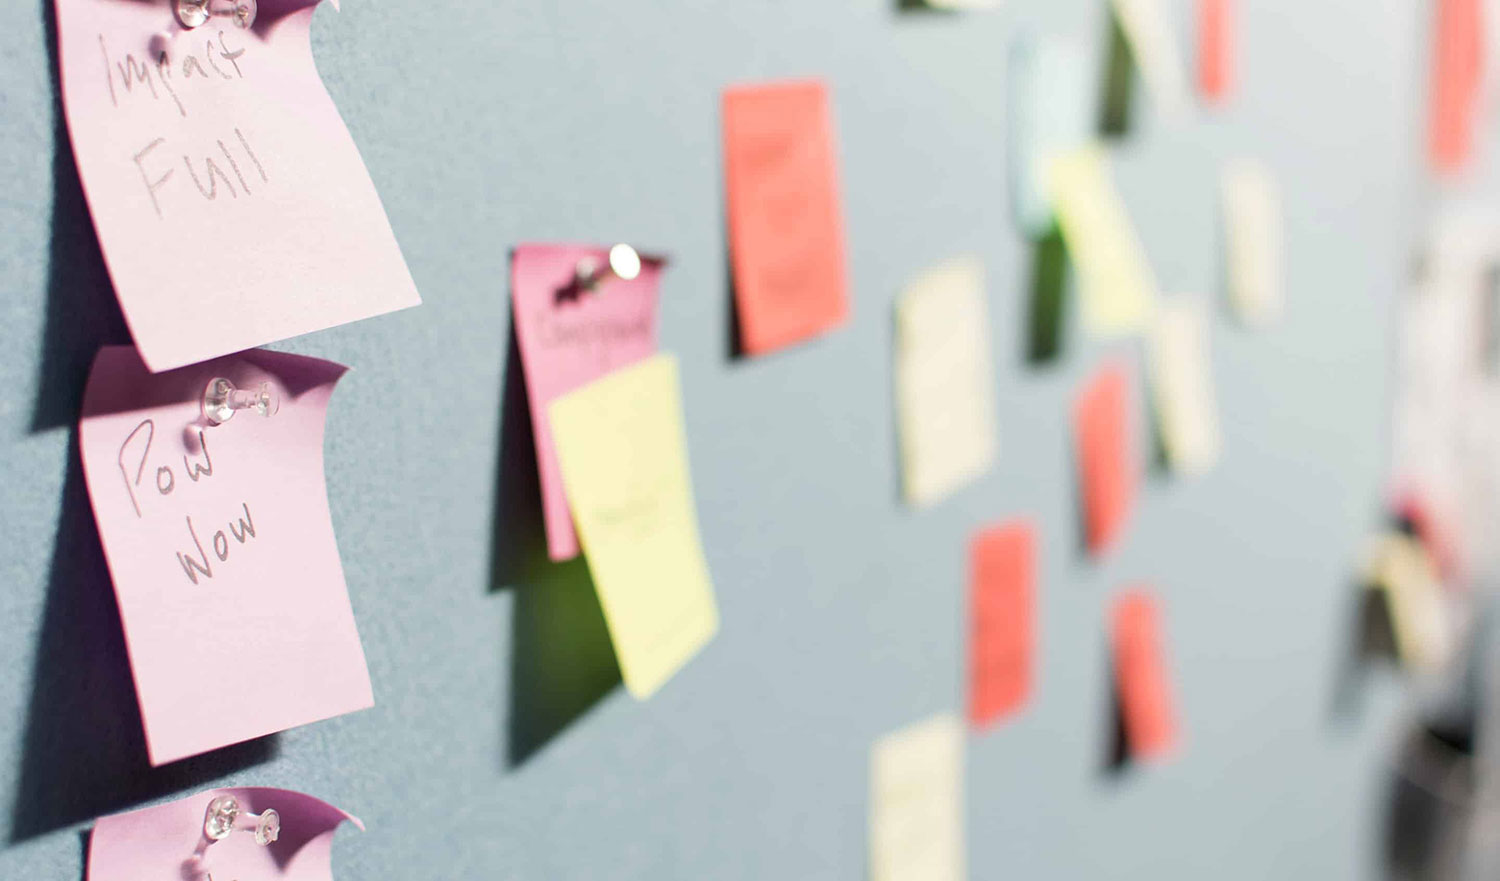 Agile kanban-style board with pos-its for software development tasks